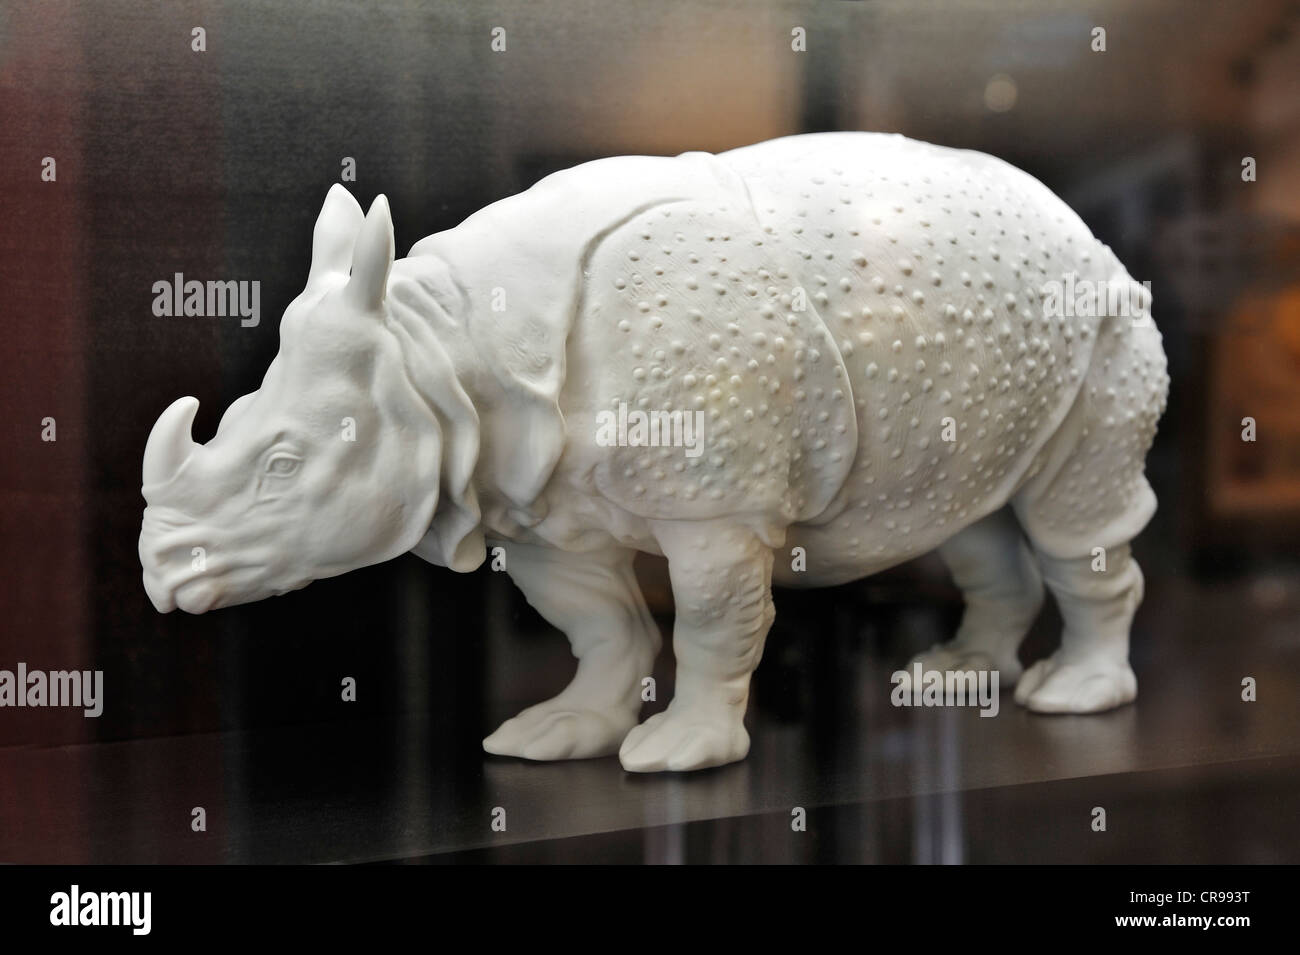 Indian rhinoceros made of porcelain in a showcase - Stock Image